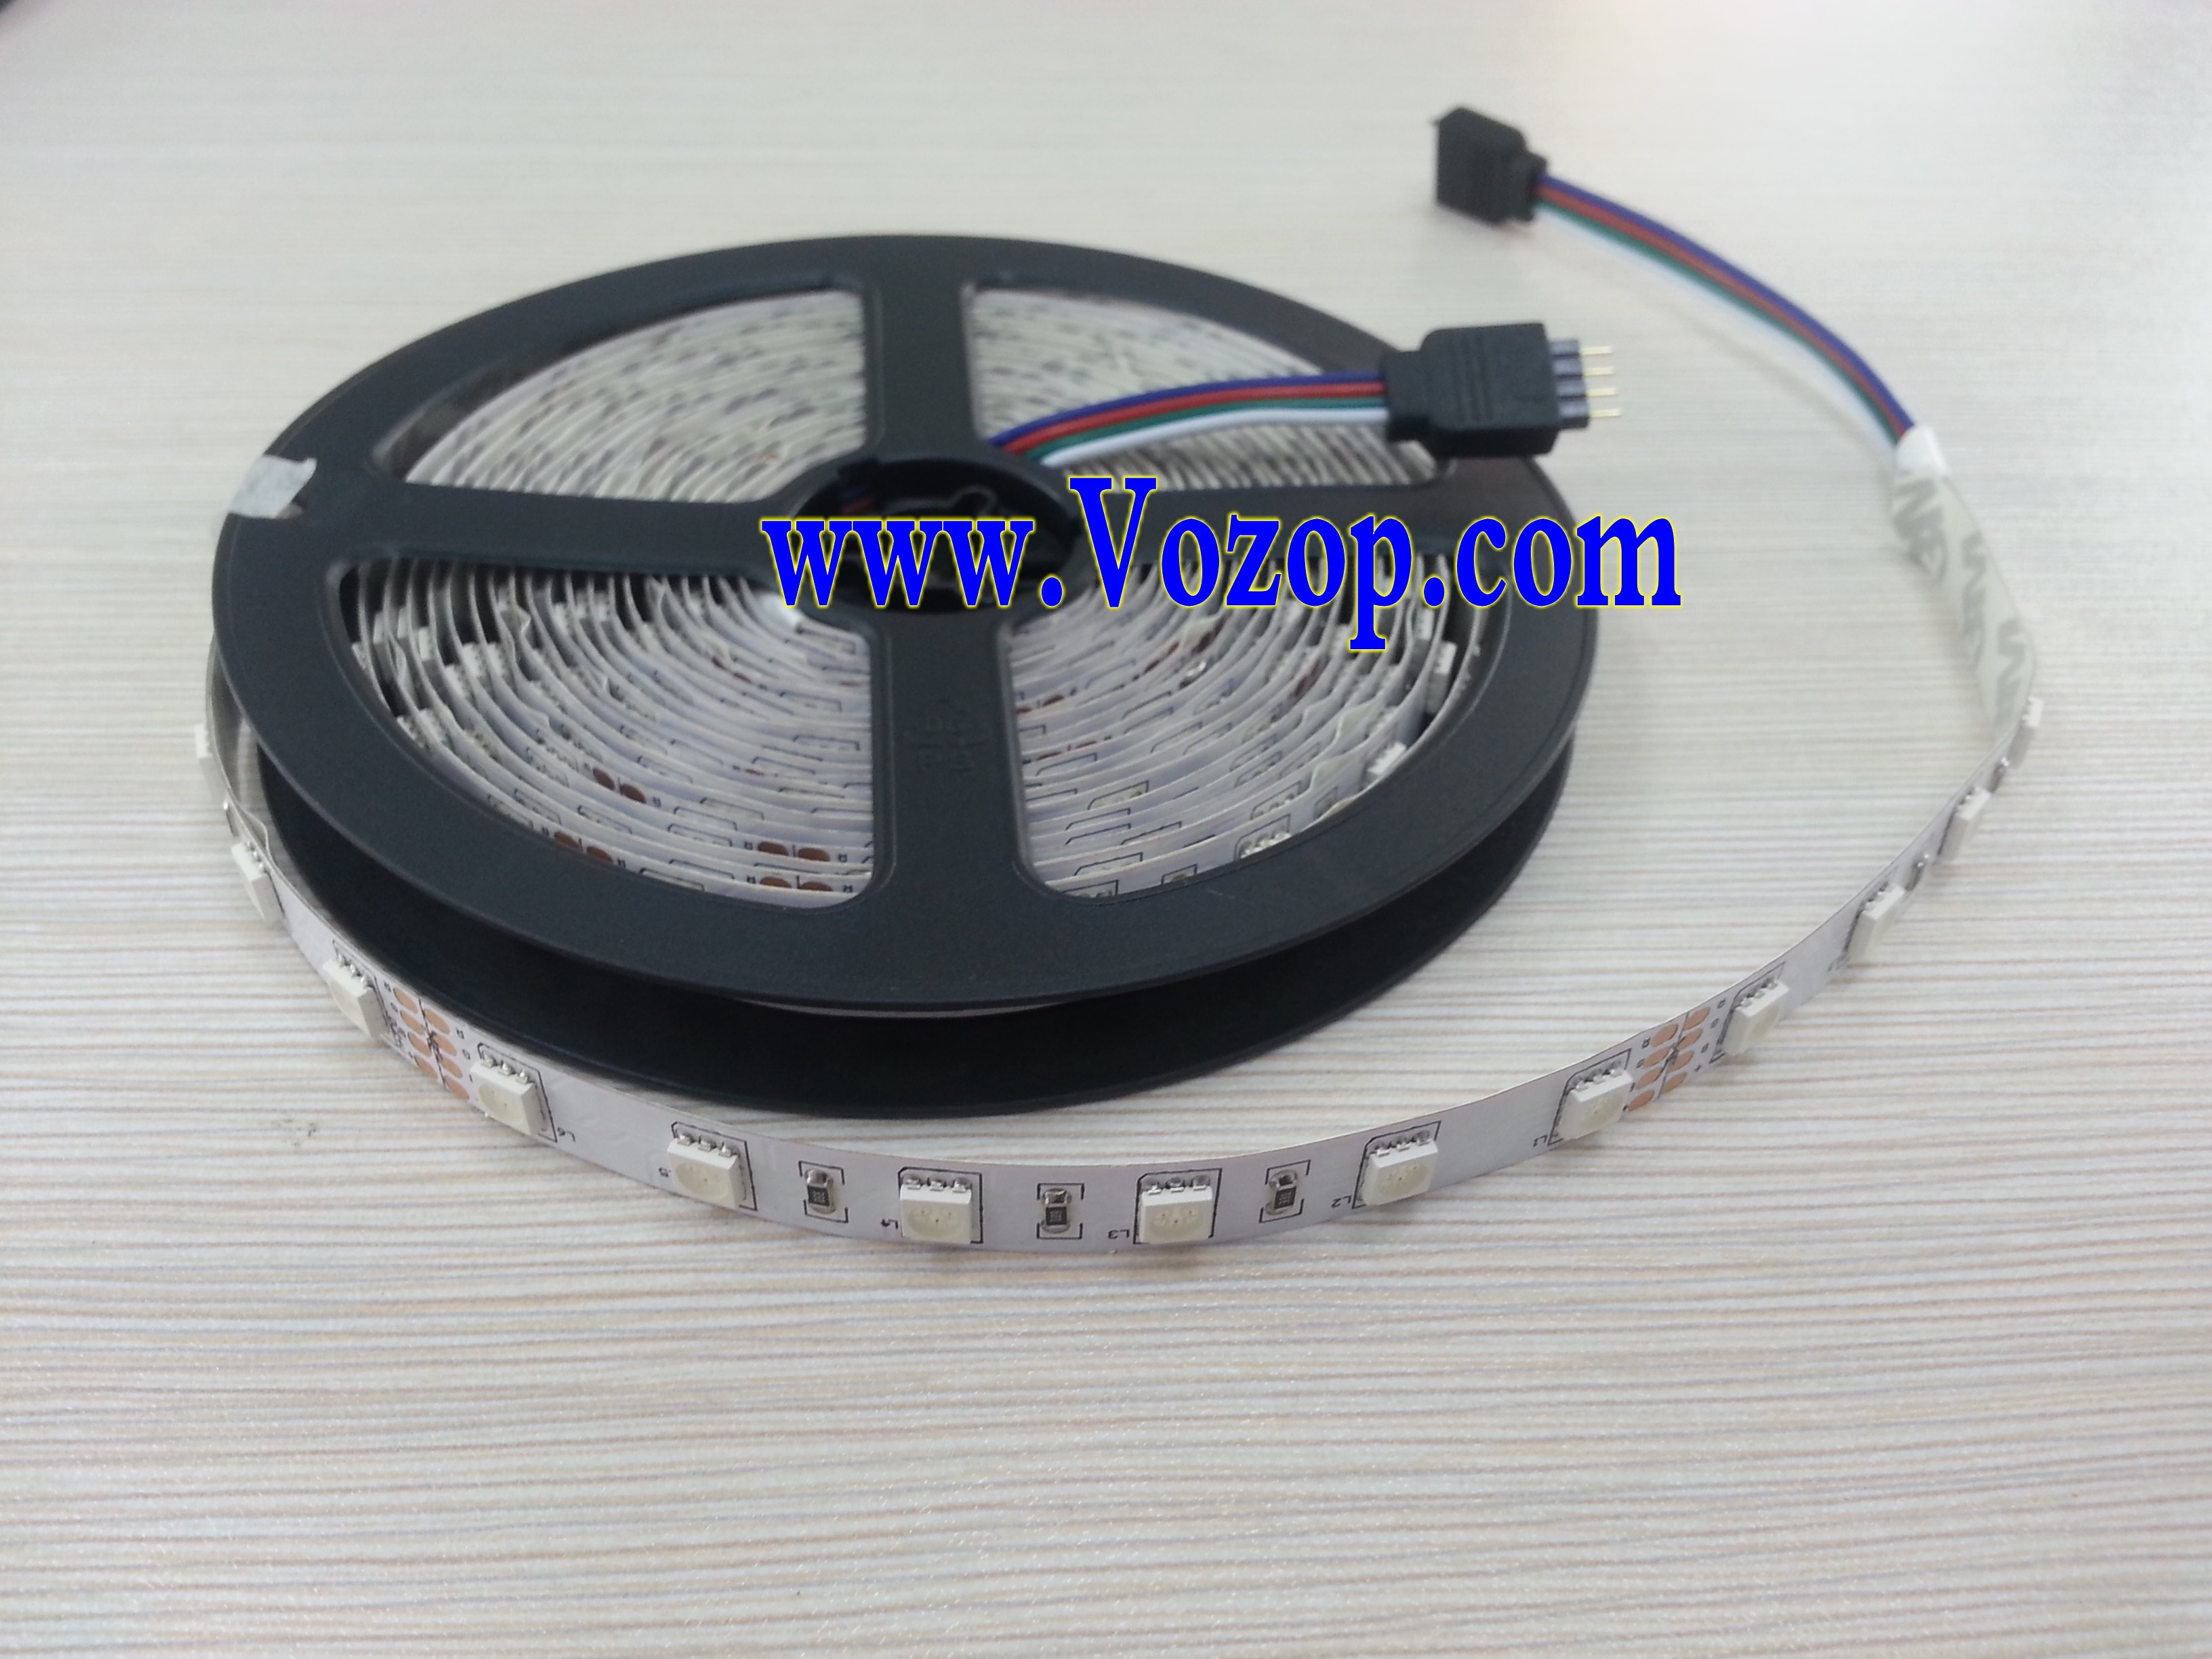 24v rgb led strip 5m 300 leds smd5050 non waterproof light. Black Bedroom Furniture Sets. Home Design Ideas